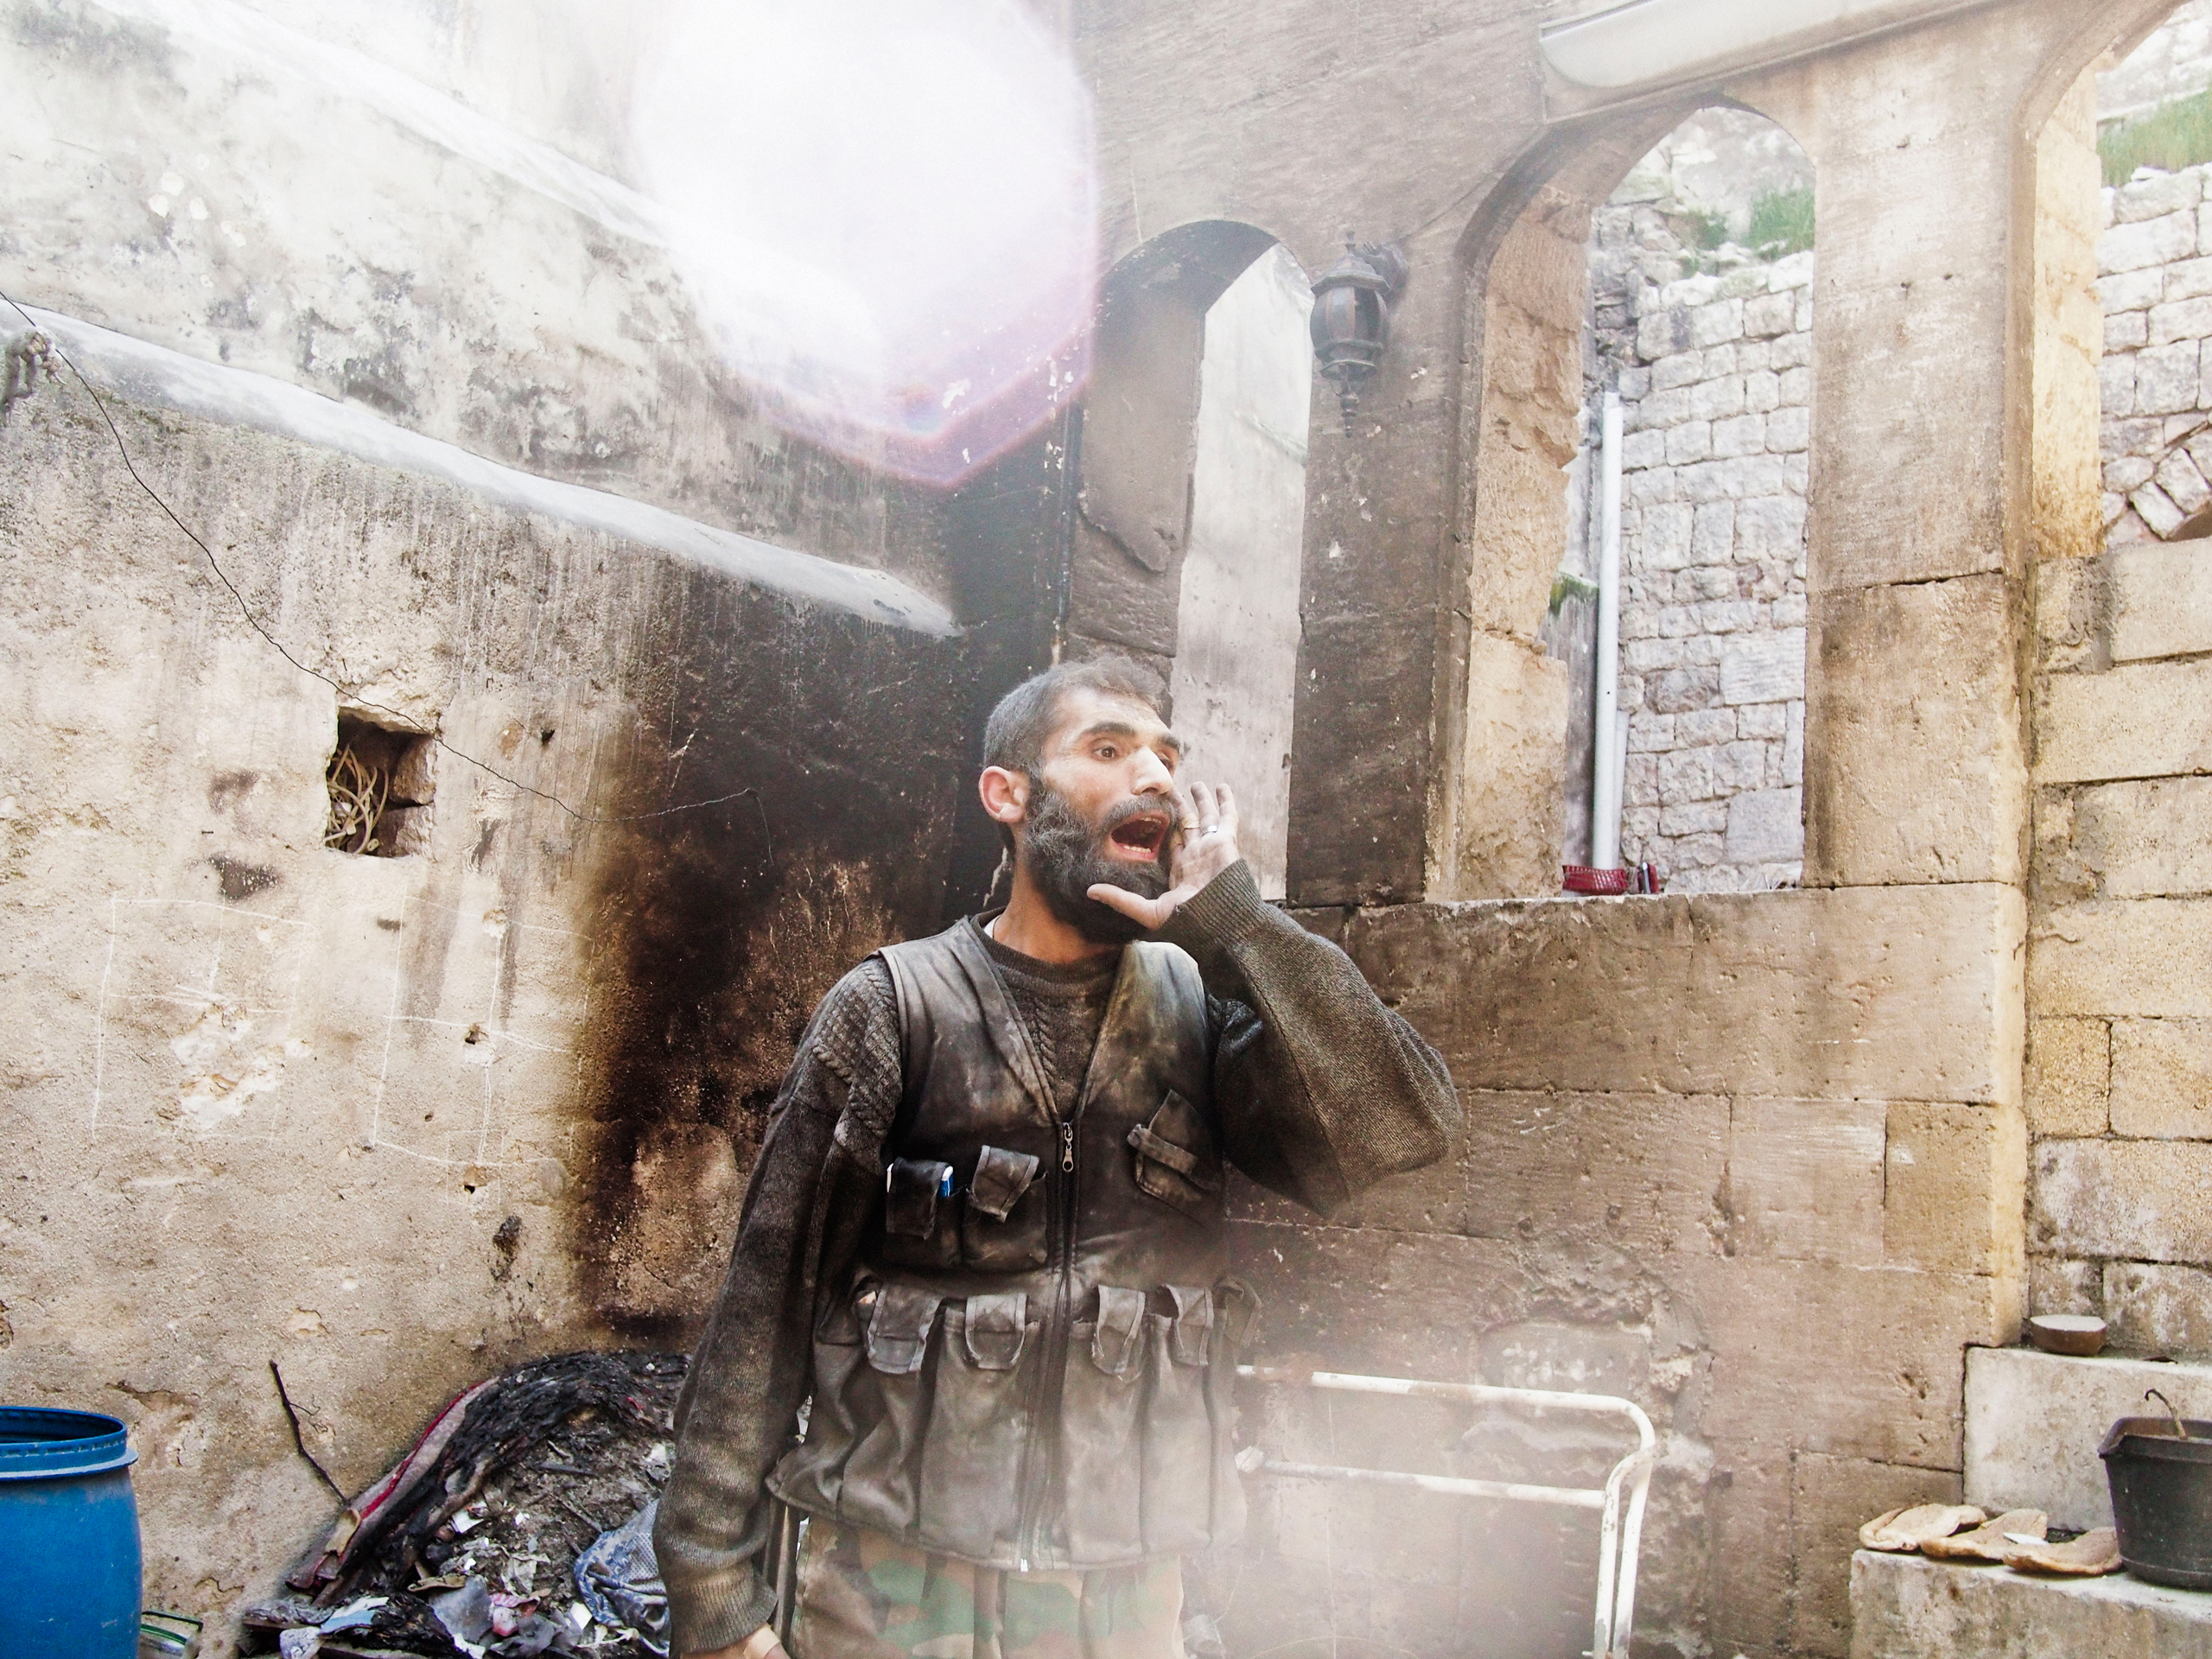 A rebel fighter in Aleppo, Syria yells  Allah u Akhbar  after the sound of an explosion could be heard close-by during fighting in Old City on March 26, 2013.